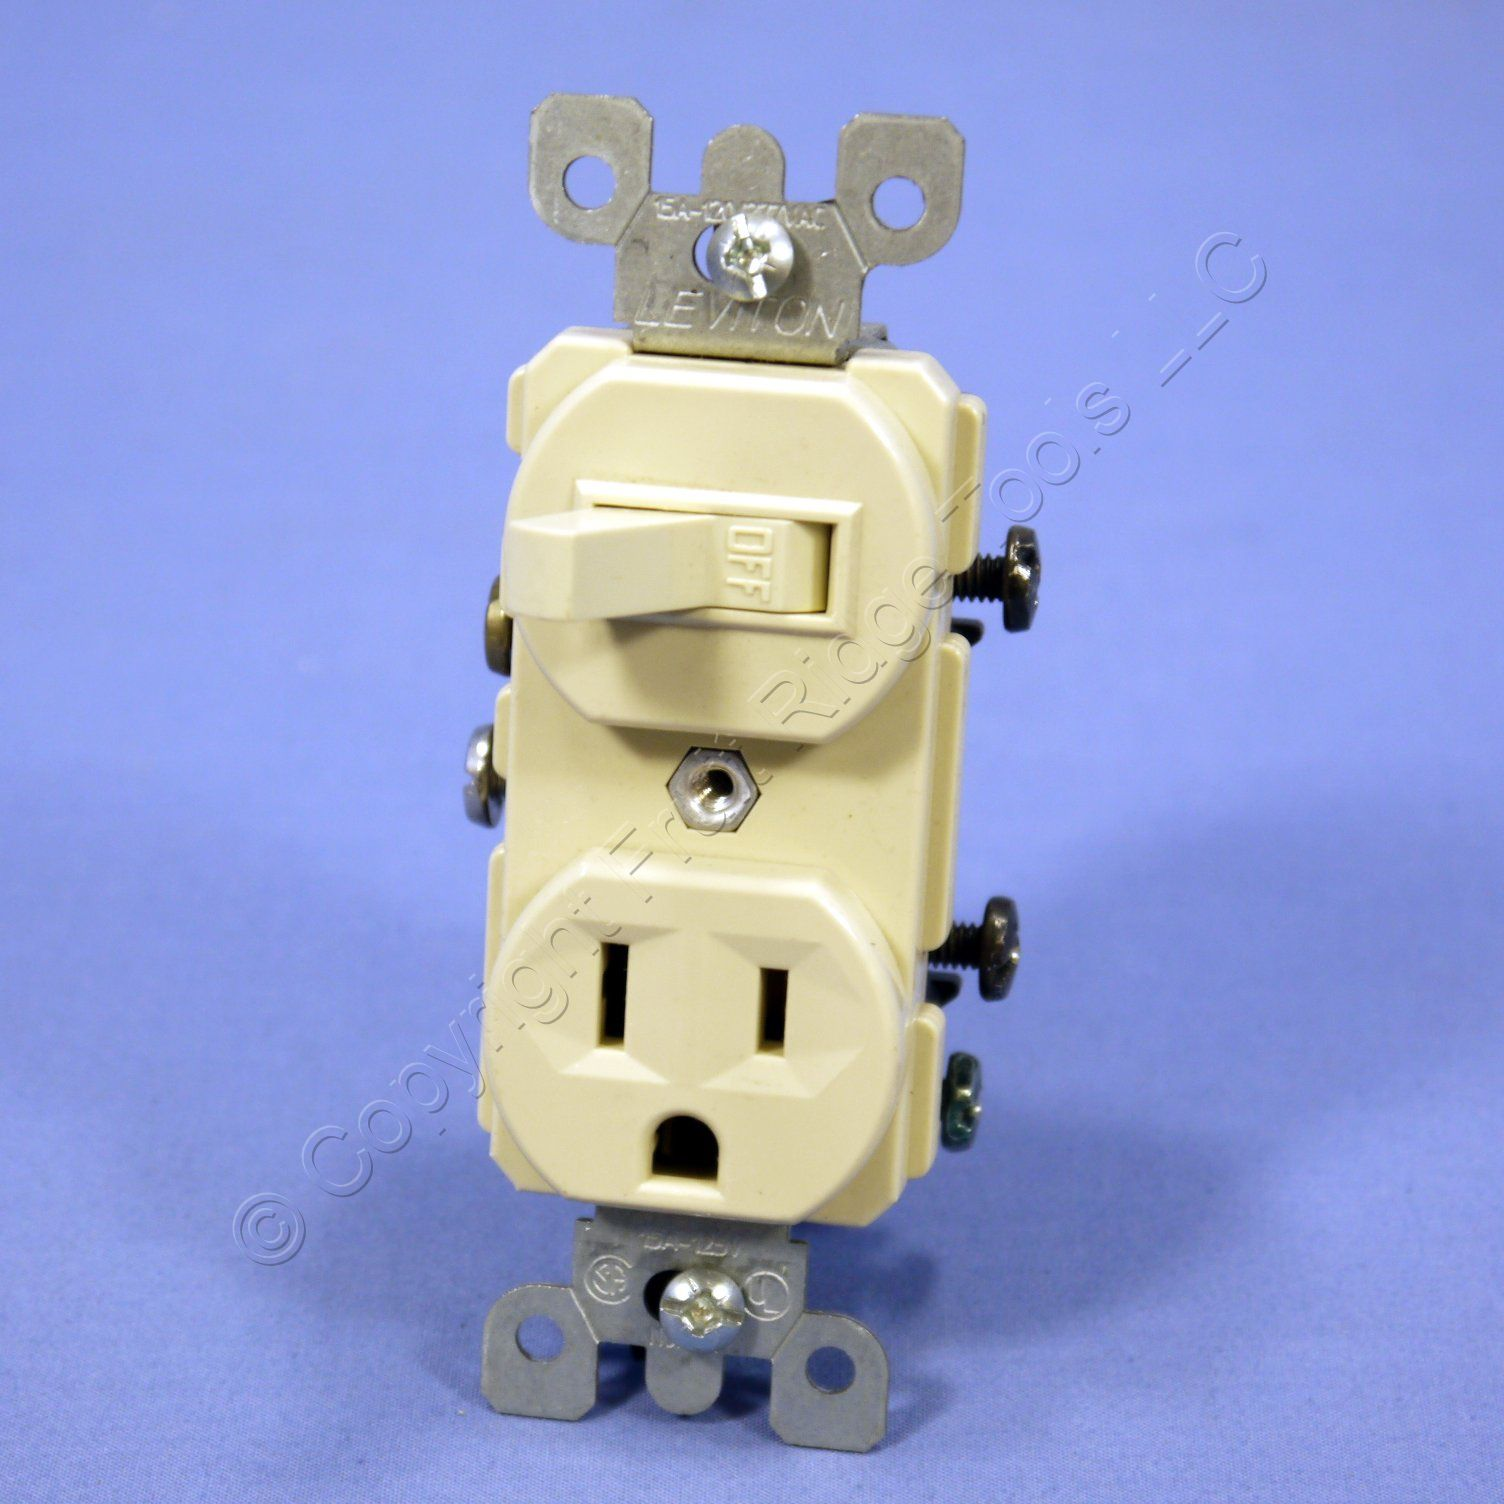 Wall Plug Light Switch : Leviton Ivory Wall Toggle Light Switch & Outlet Receptacle 15A 5225-I-042 Bulk eBay